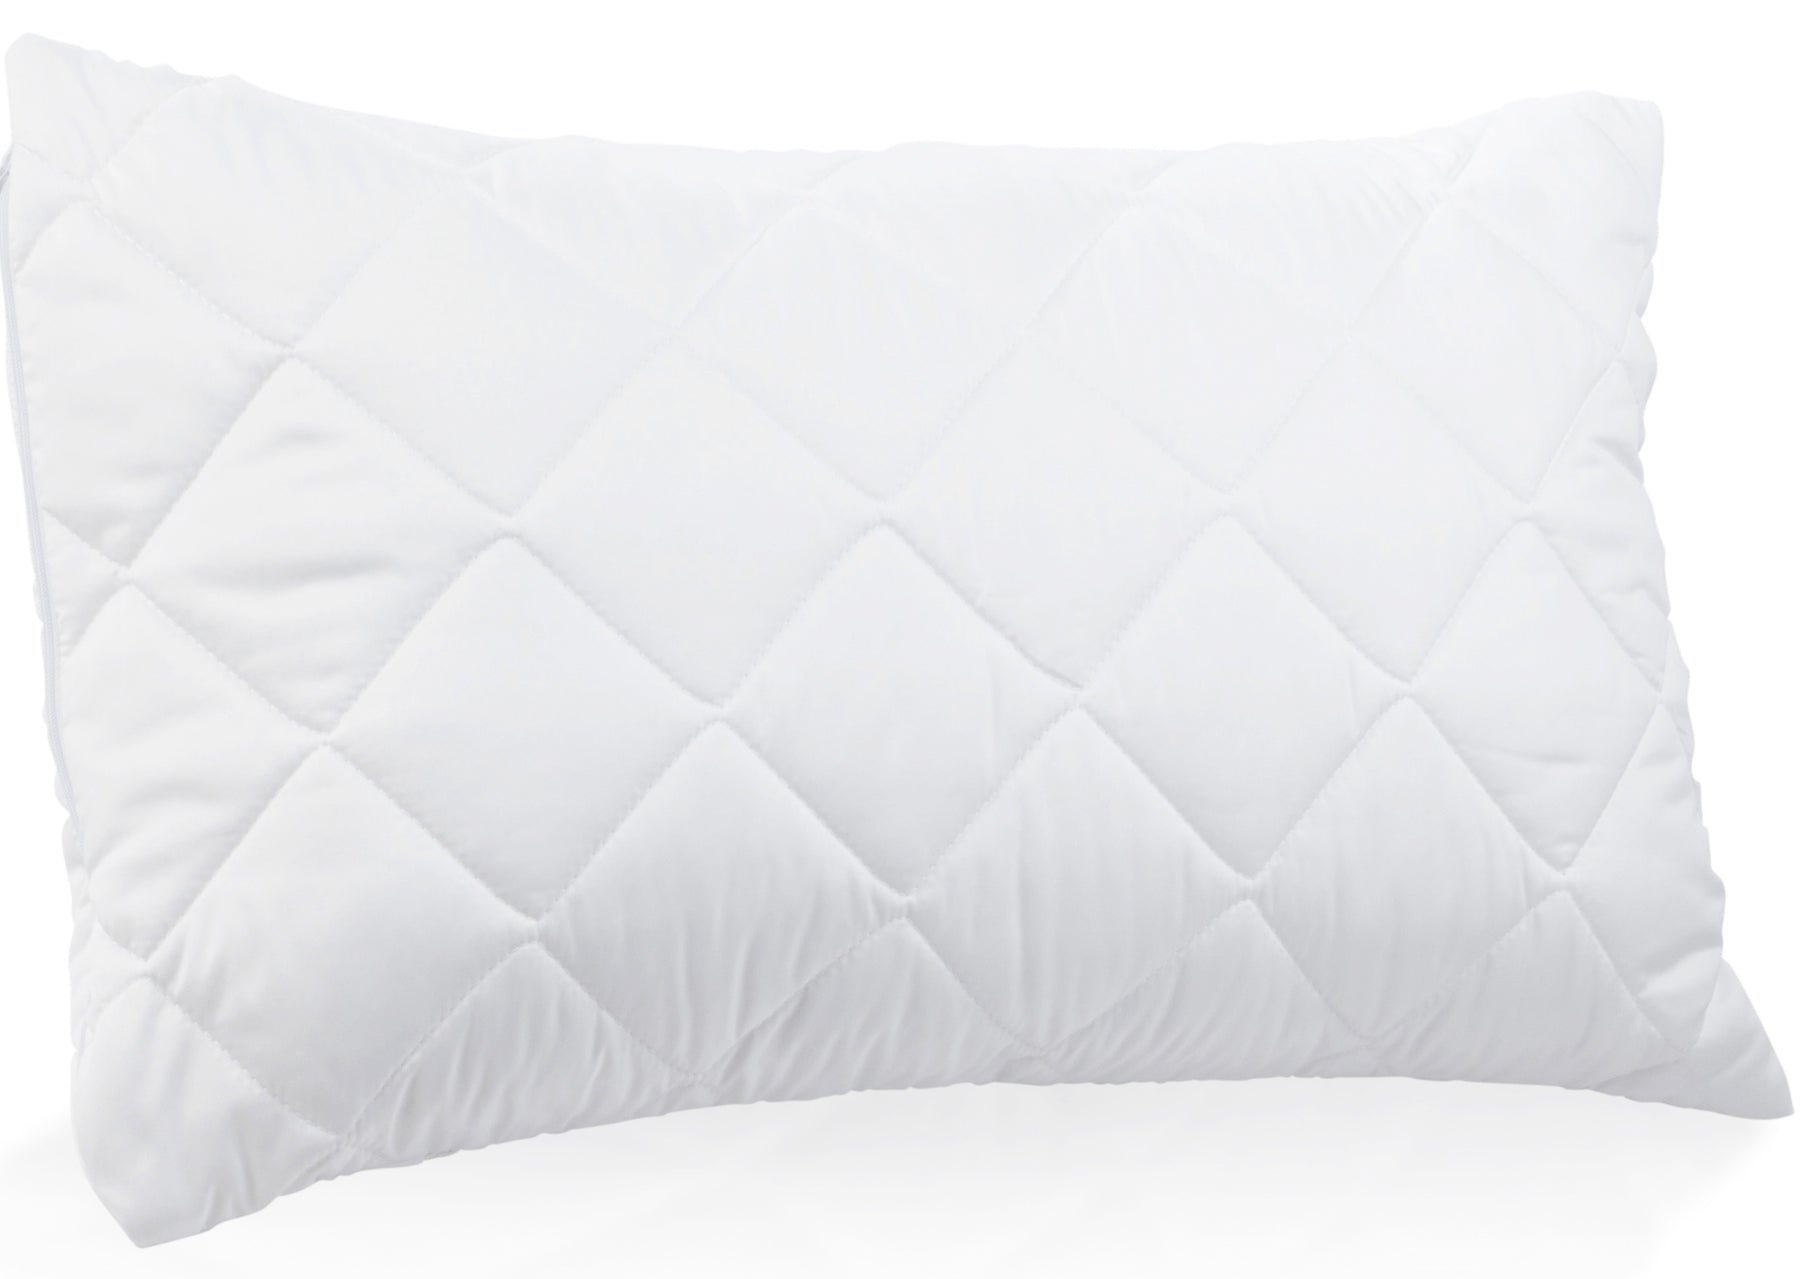 Emperor Quilted Pillow Protectors Pack of 2